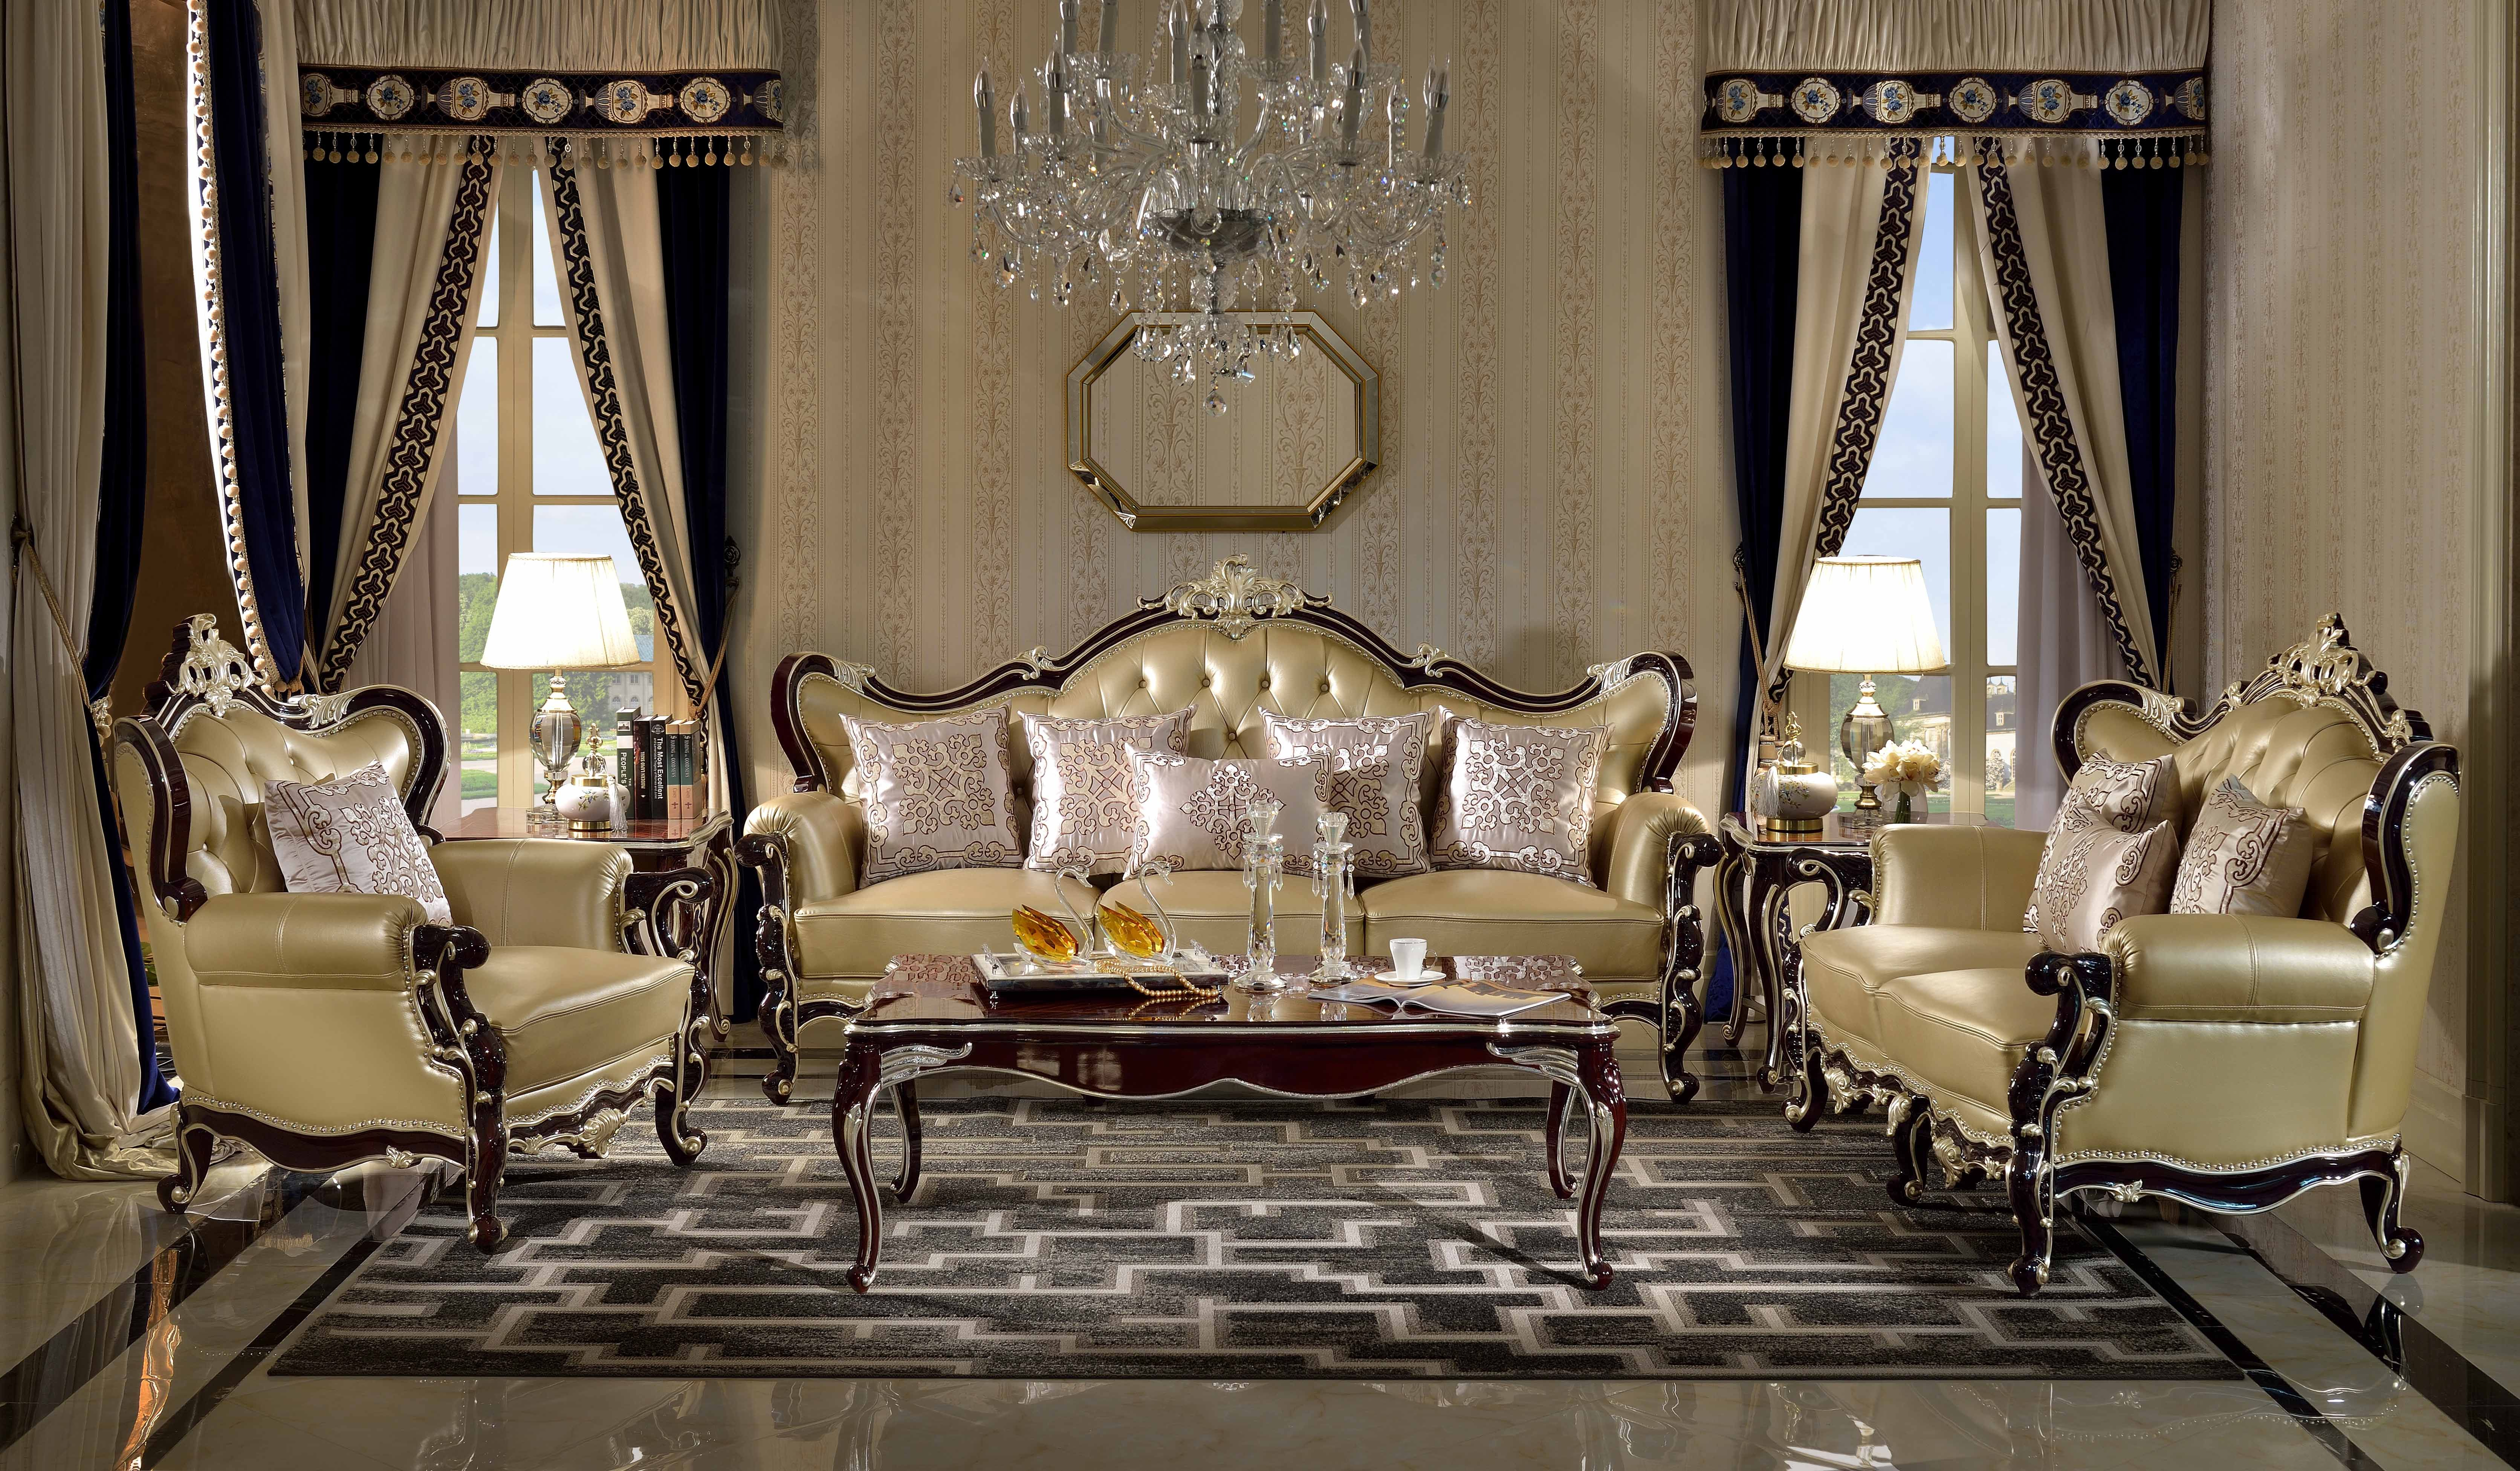 Ma Xiaoying Leather Sofas Antique Furniture Solid Wood Frame